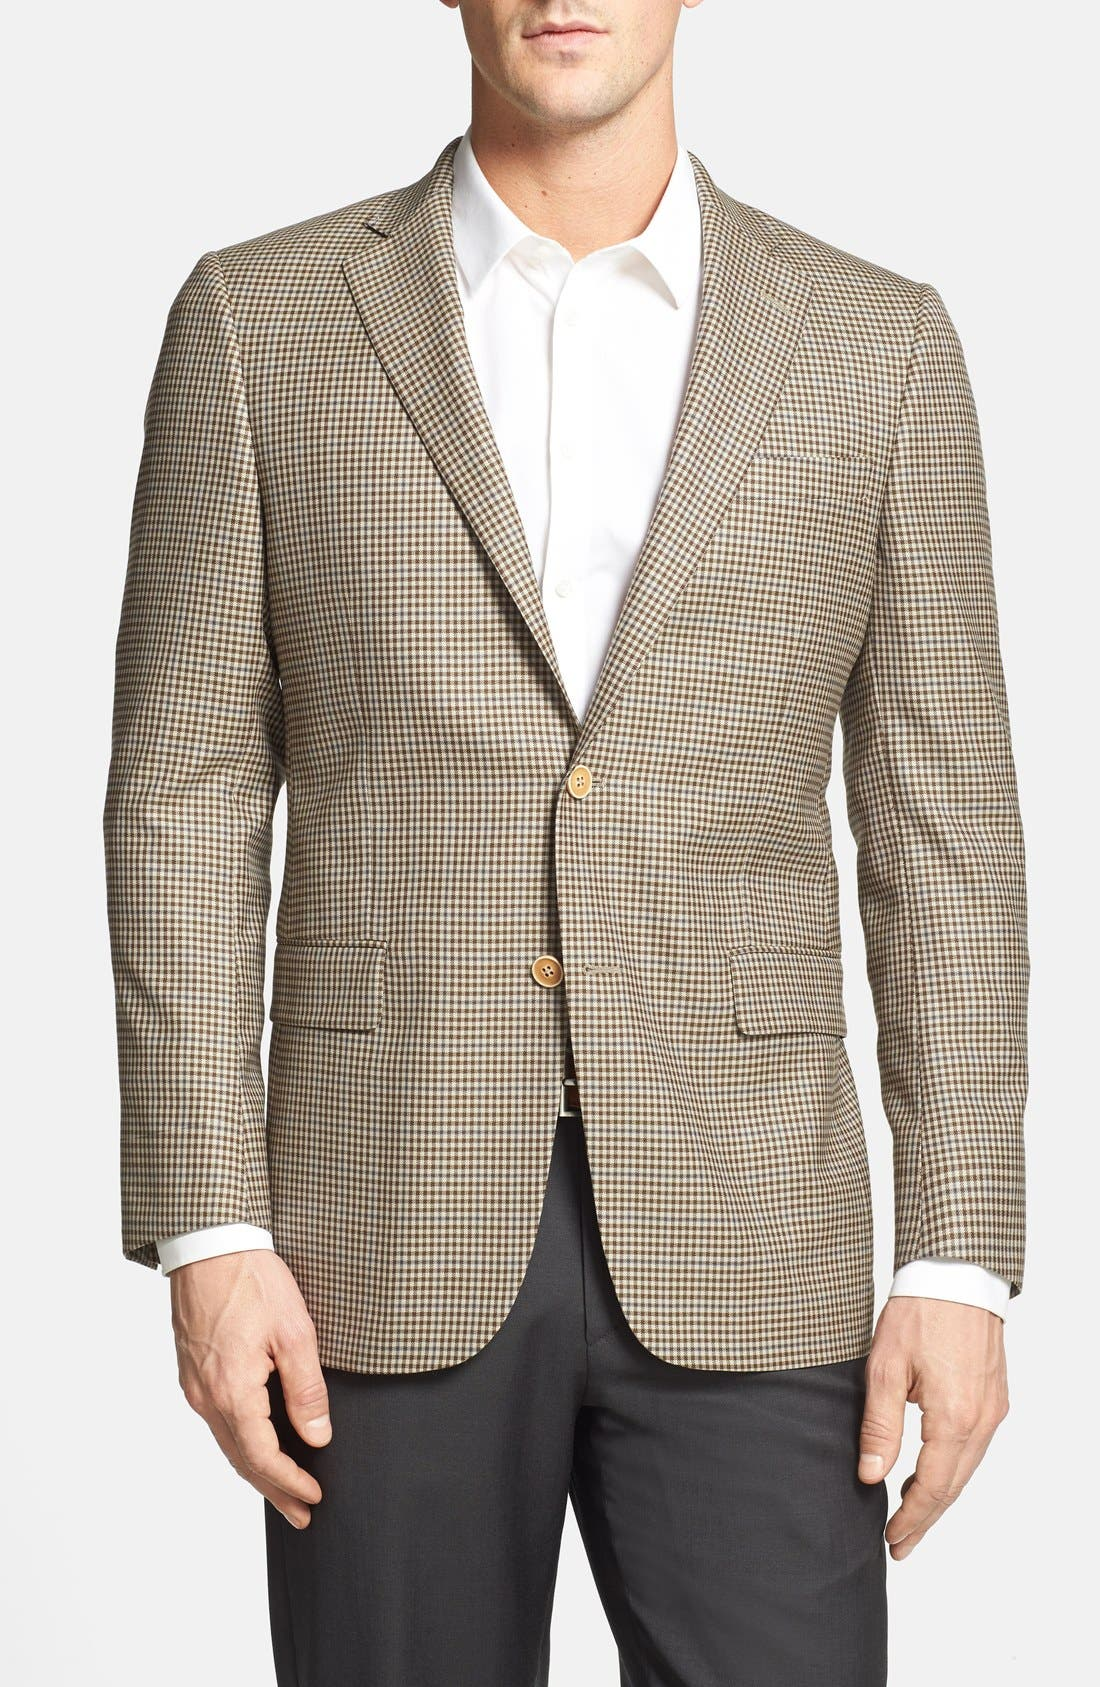 Main Image - 2 BTN NY CLASSIC FIT SPORTCOAT